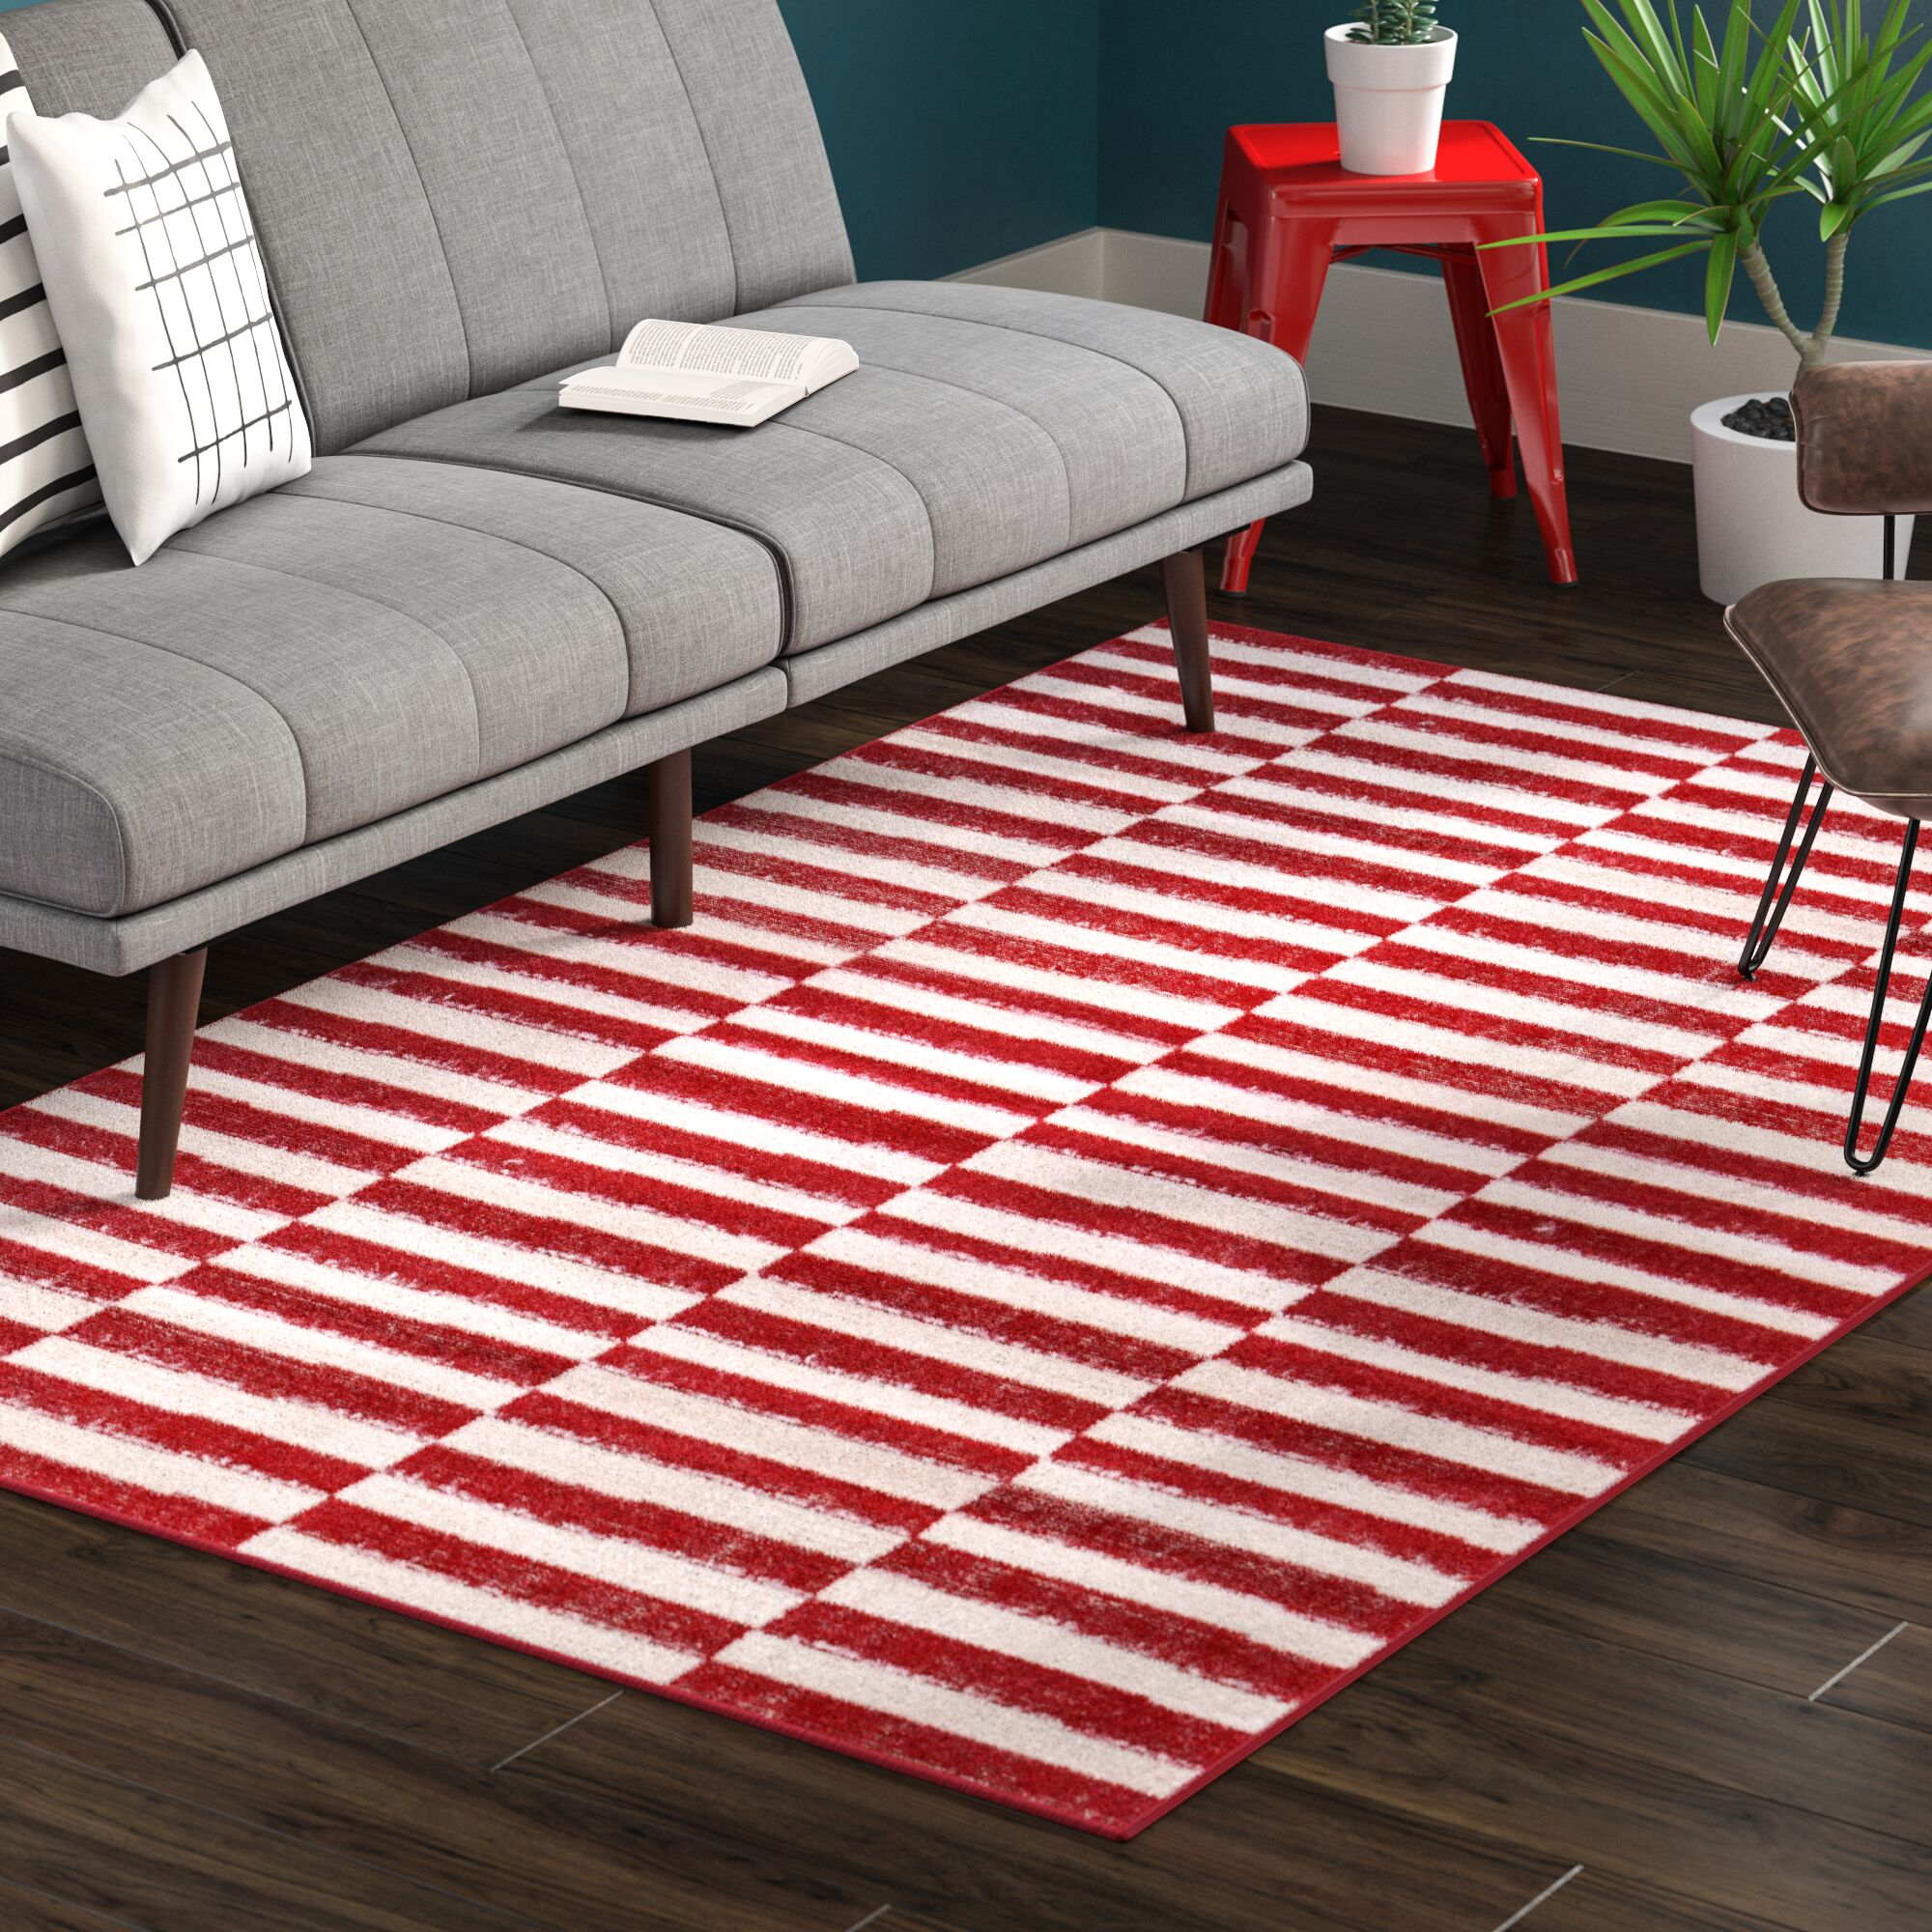 Mcgrail Red Area Rug Rug Size: Rectangle 9' x 12'